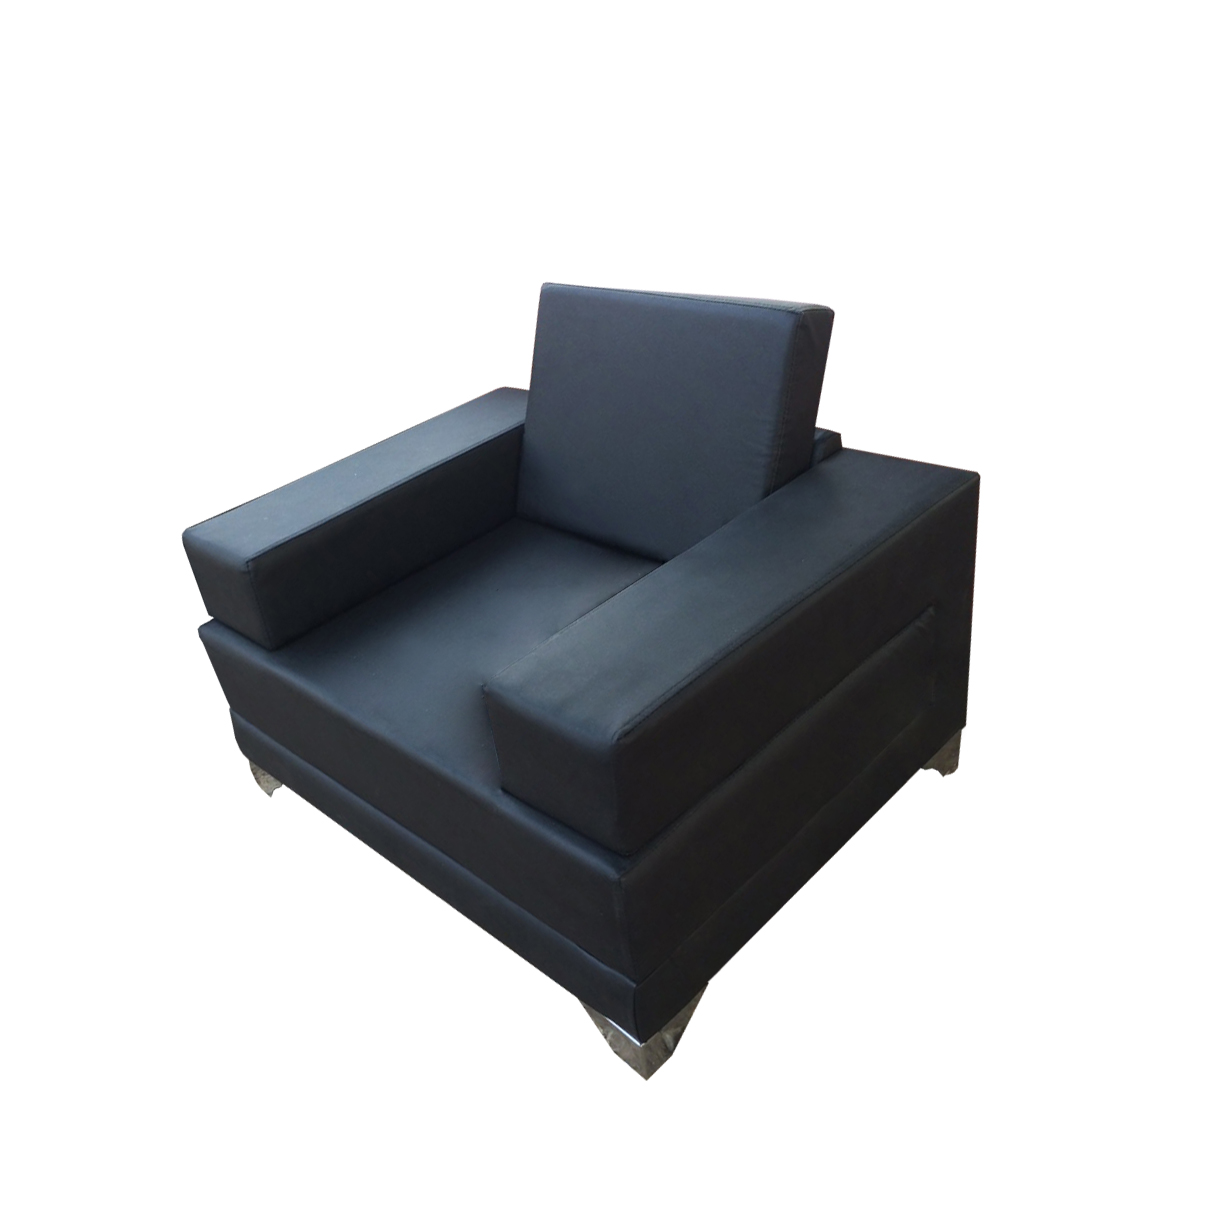 Conference Series chair manufacturer in Delhi  Spark international is the Best  Conference Series chair manufacturer in Delhi